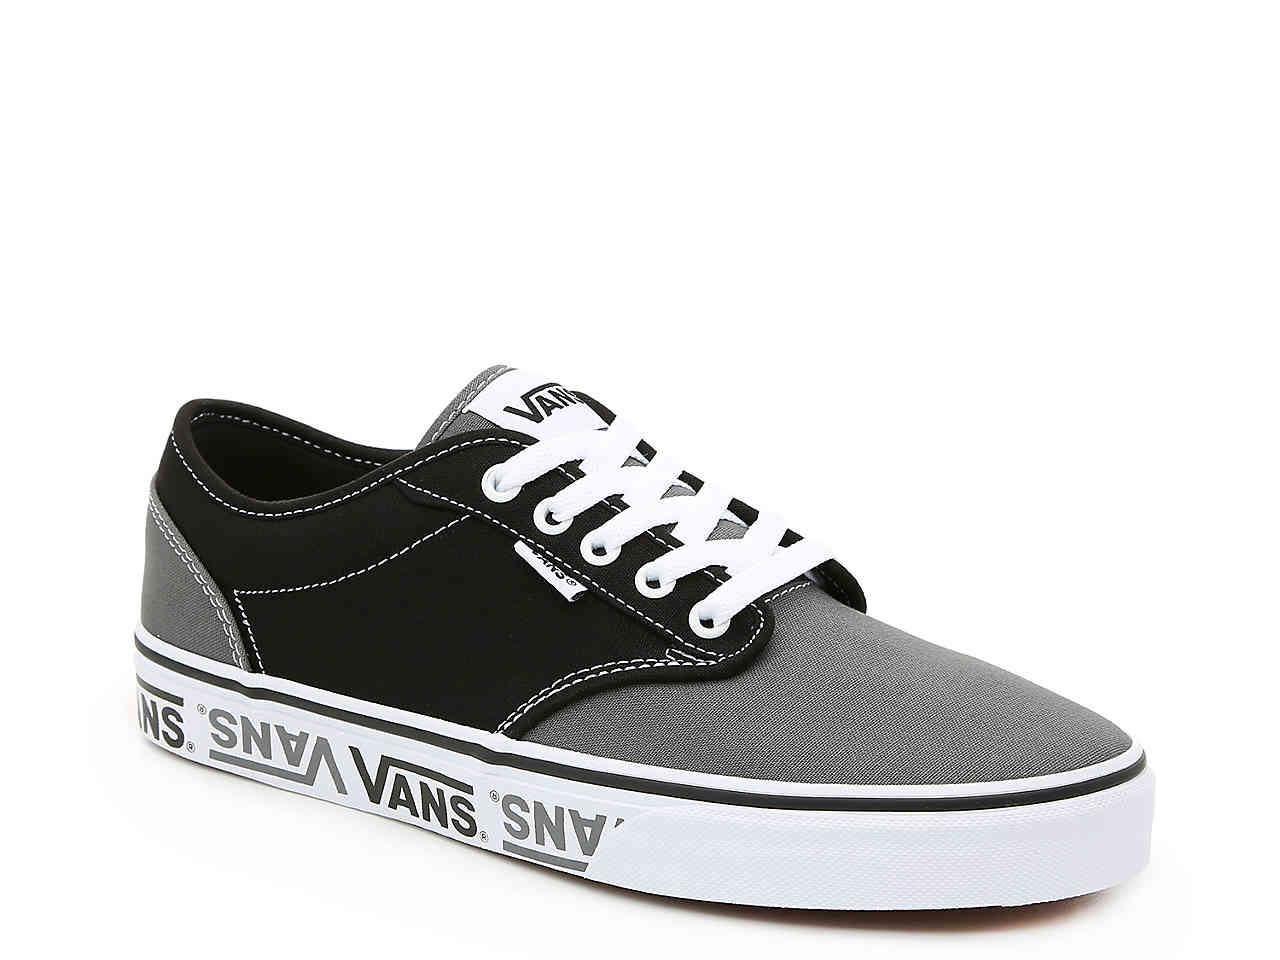 Lyst - Vans Atwood Logo Sneaker in Black for Men e050c7c65